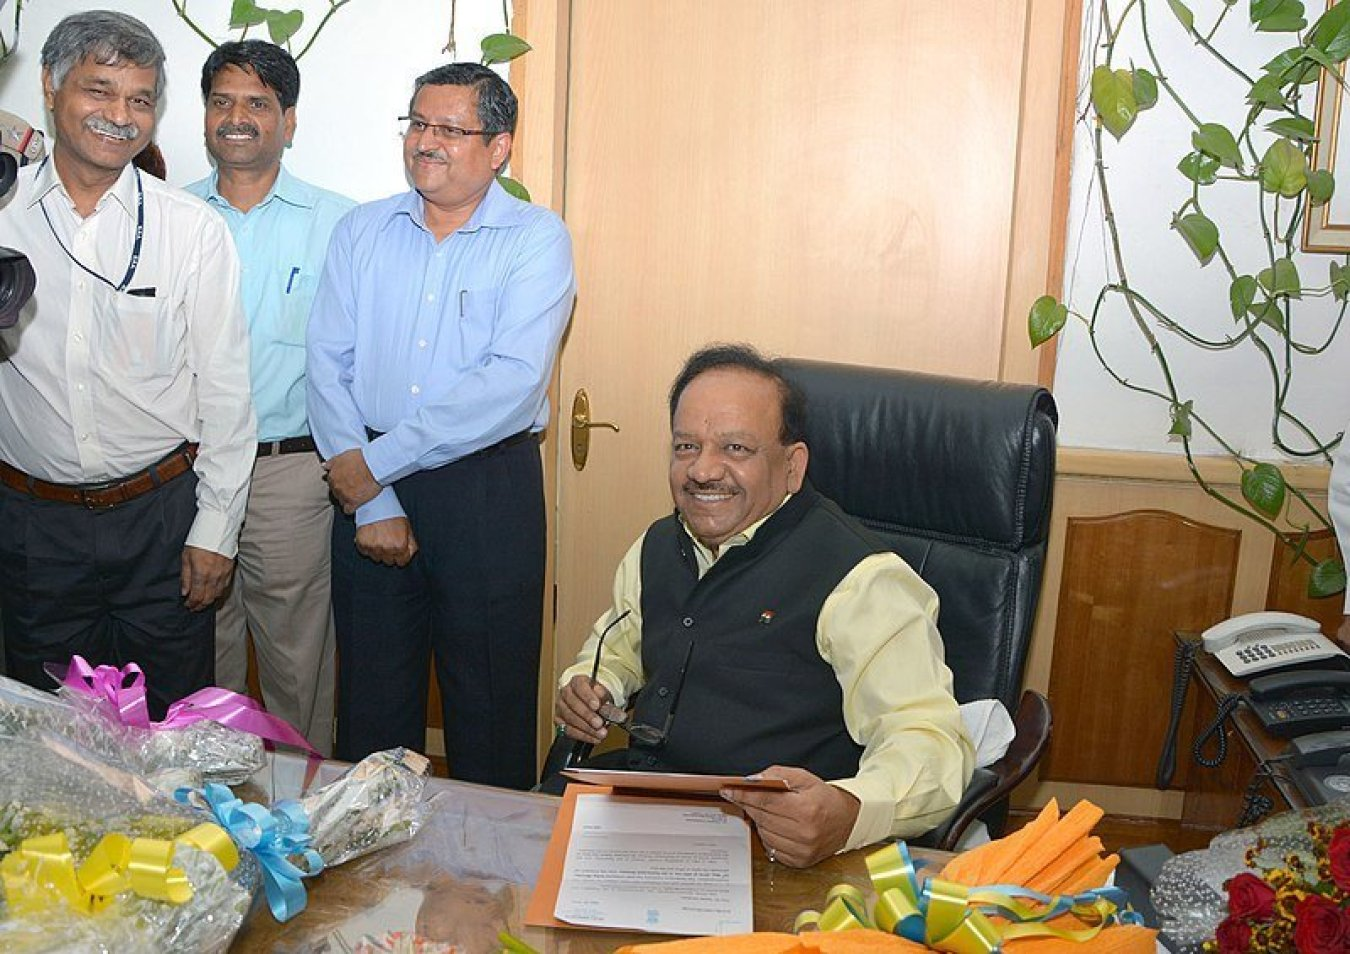 Dr Vardhan, who has unveiled a blueprint for digital health in India. Image credit: Ministry of Health and Family Welfare (GODL-India) [GODL-India (https://data.gov.in/sites/default/files/Gazette_Notification_OGDL.pdf)] This file or its source was published by Press Information Bureau on behalf of Ministry of Health and Family Welfare, Government of India under the ID 54064and CNR 56840.(directlink)